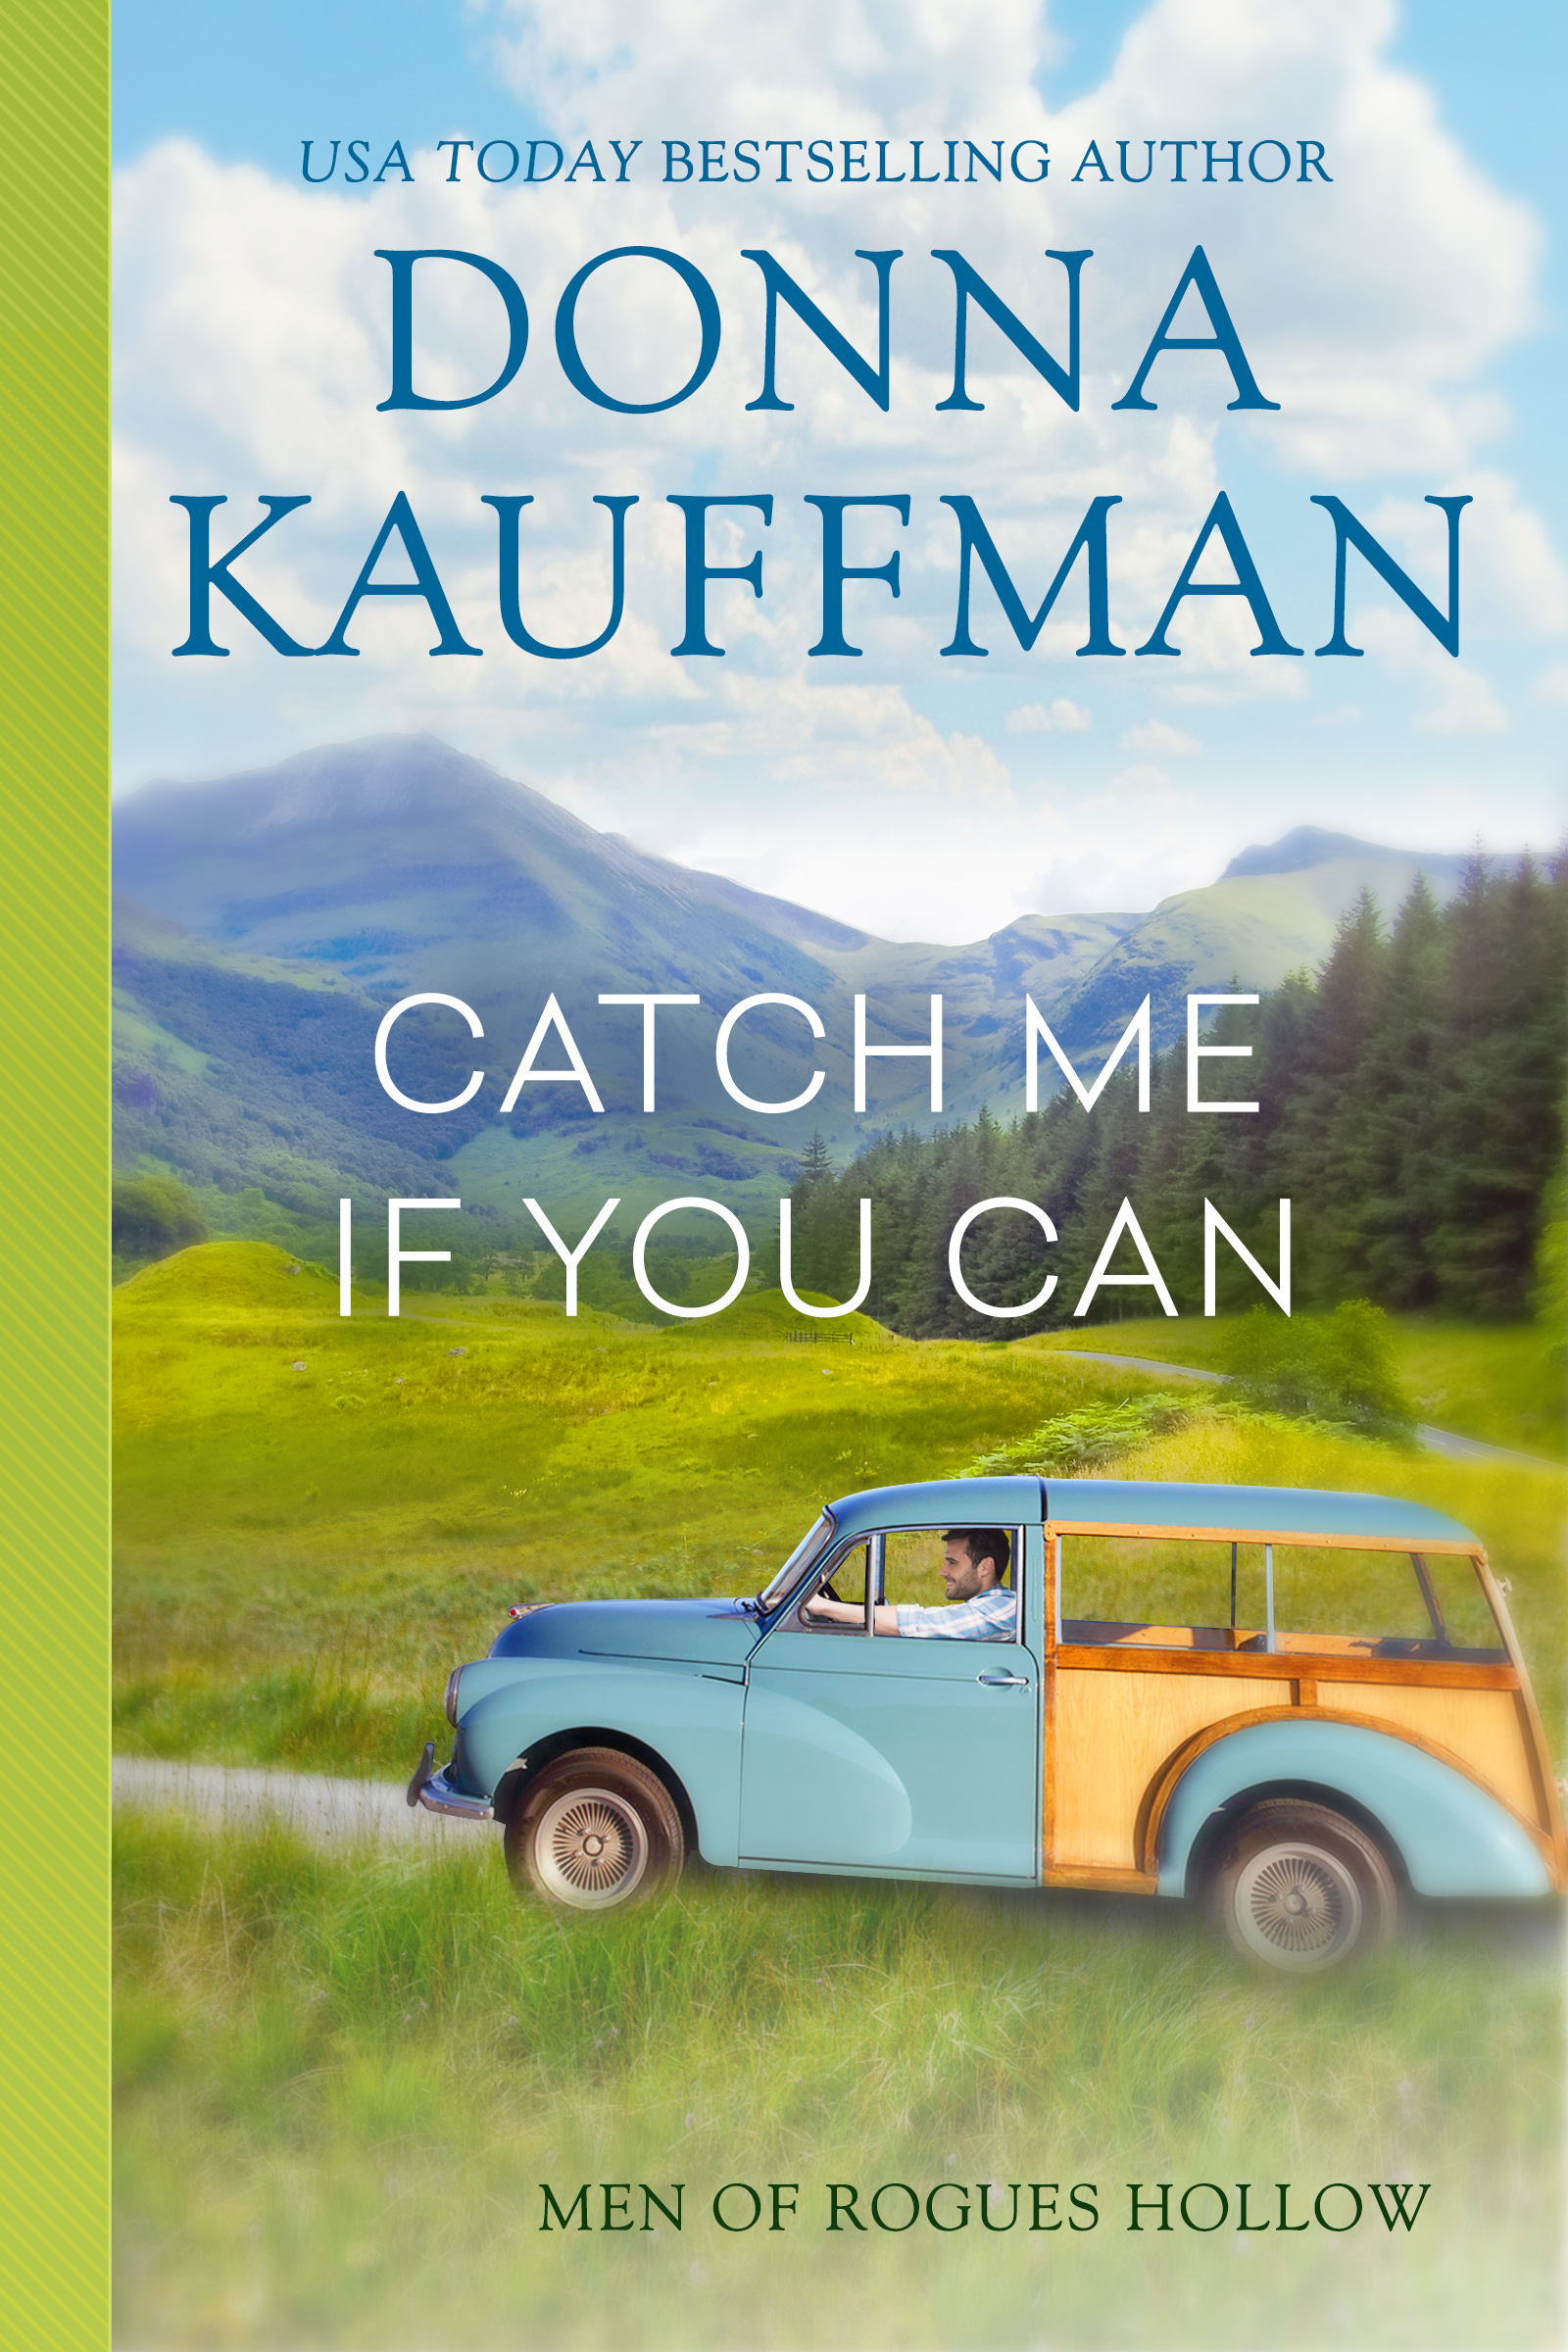 Catch Me If You Can (Men of Rogue's Hollow #3)